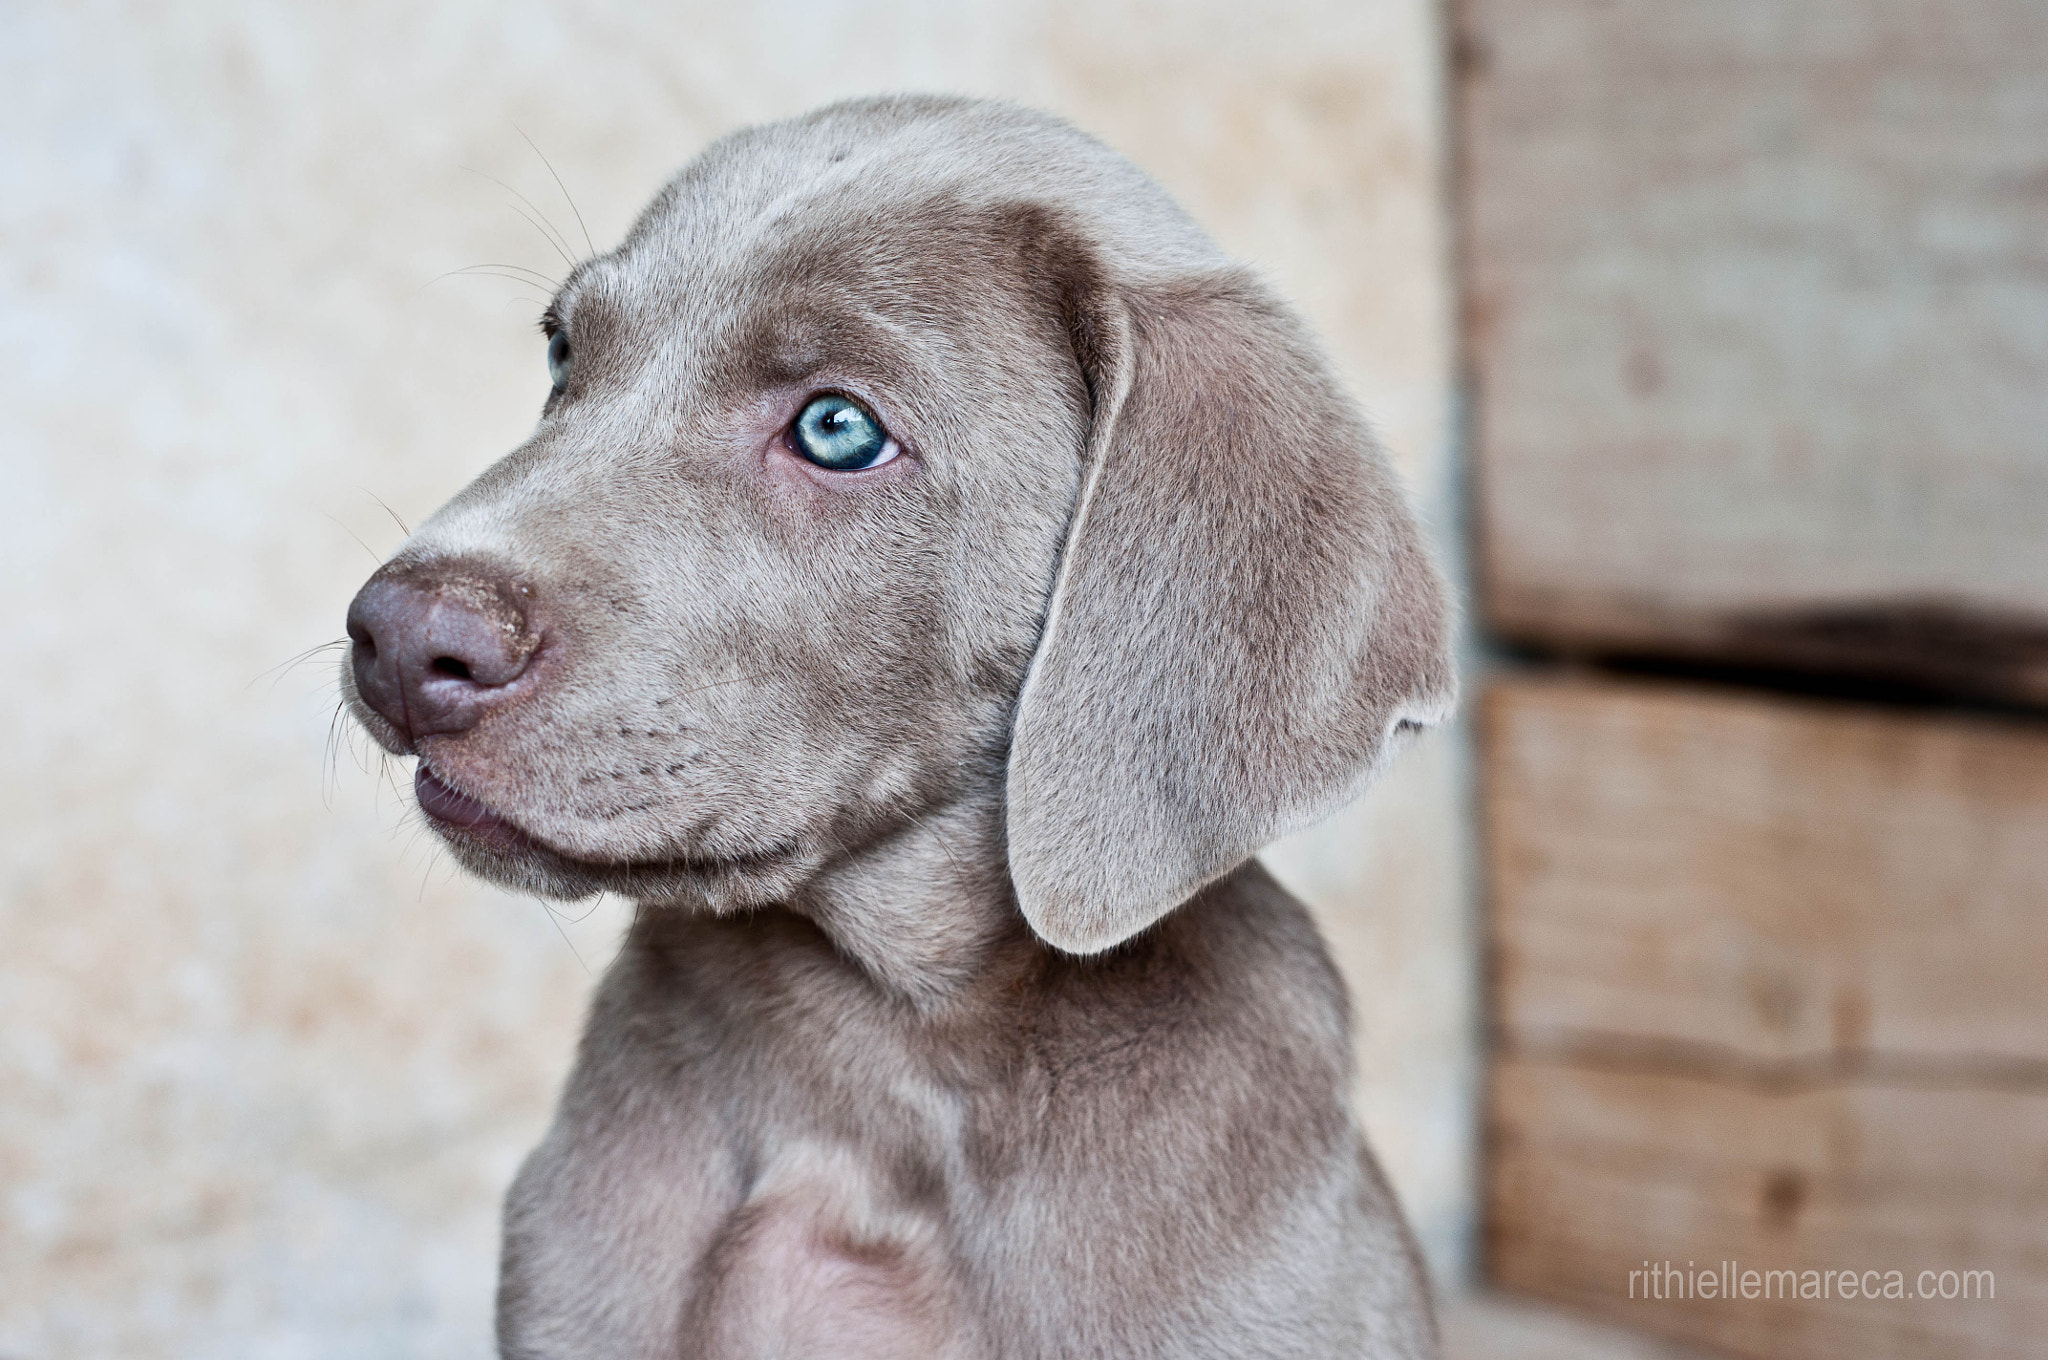 Photograph Puppy by Rithielle Mareca on 500px